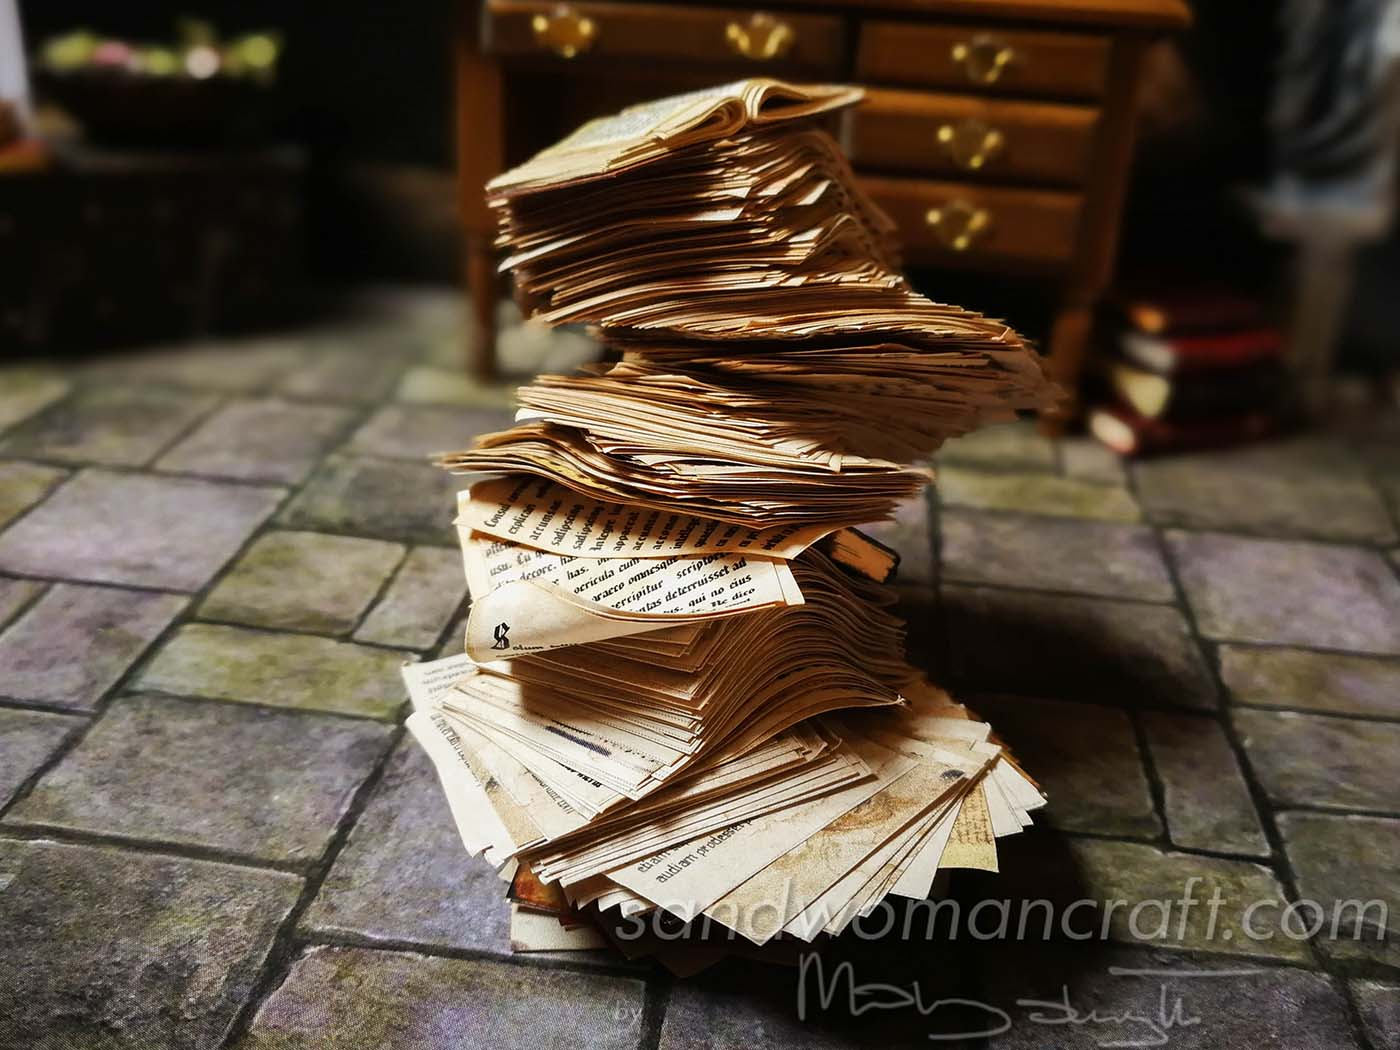 Miniature paper pile in 1:12 scale